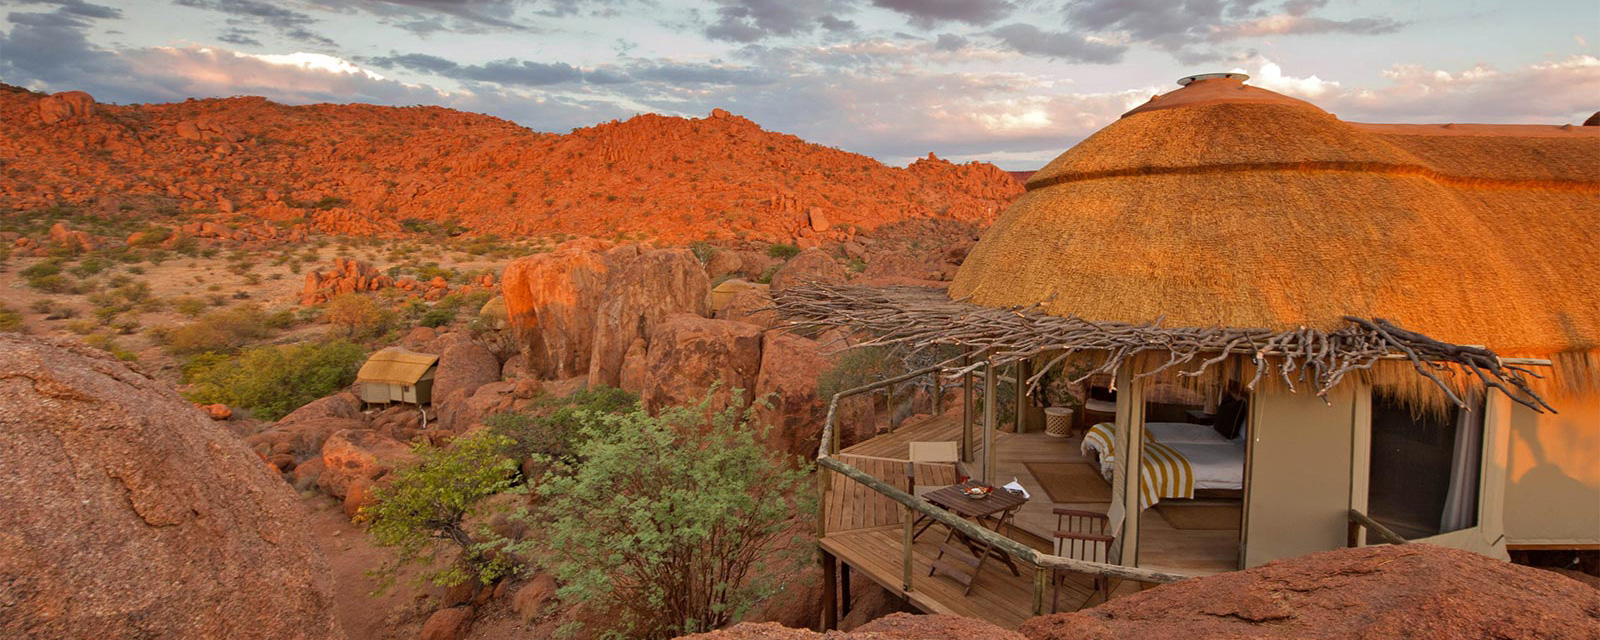 Mowani Mountain Camp - NAMIBIA